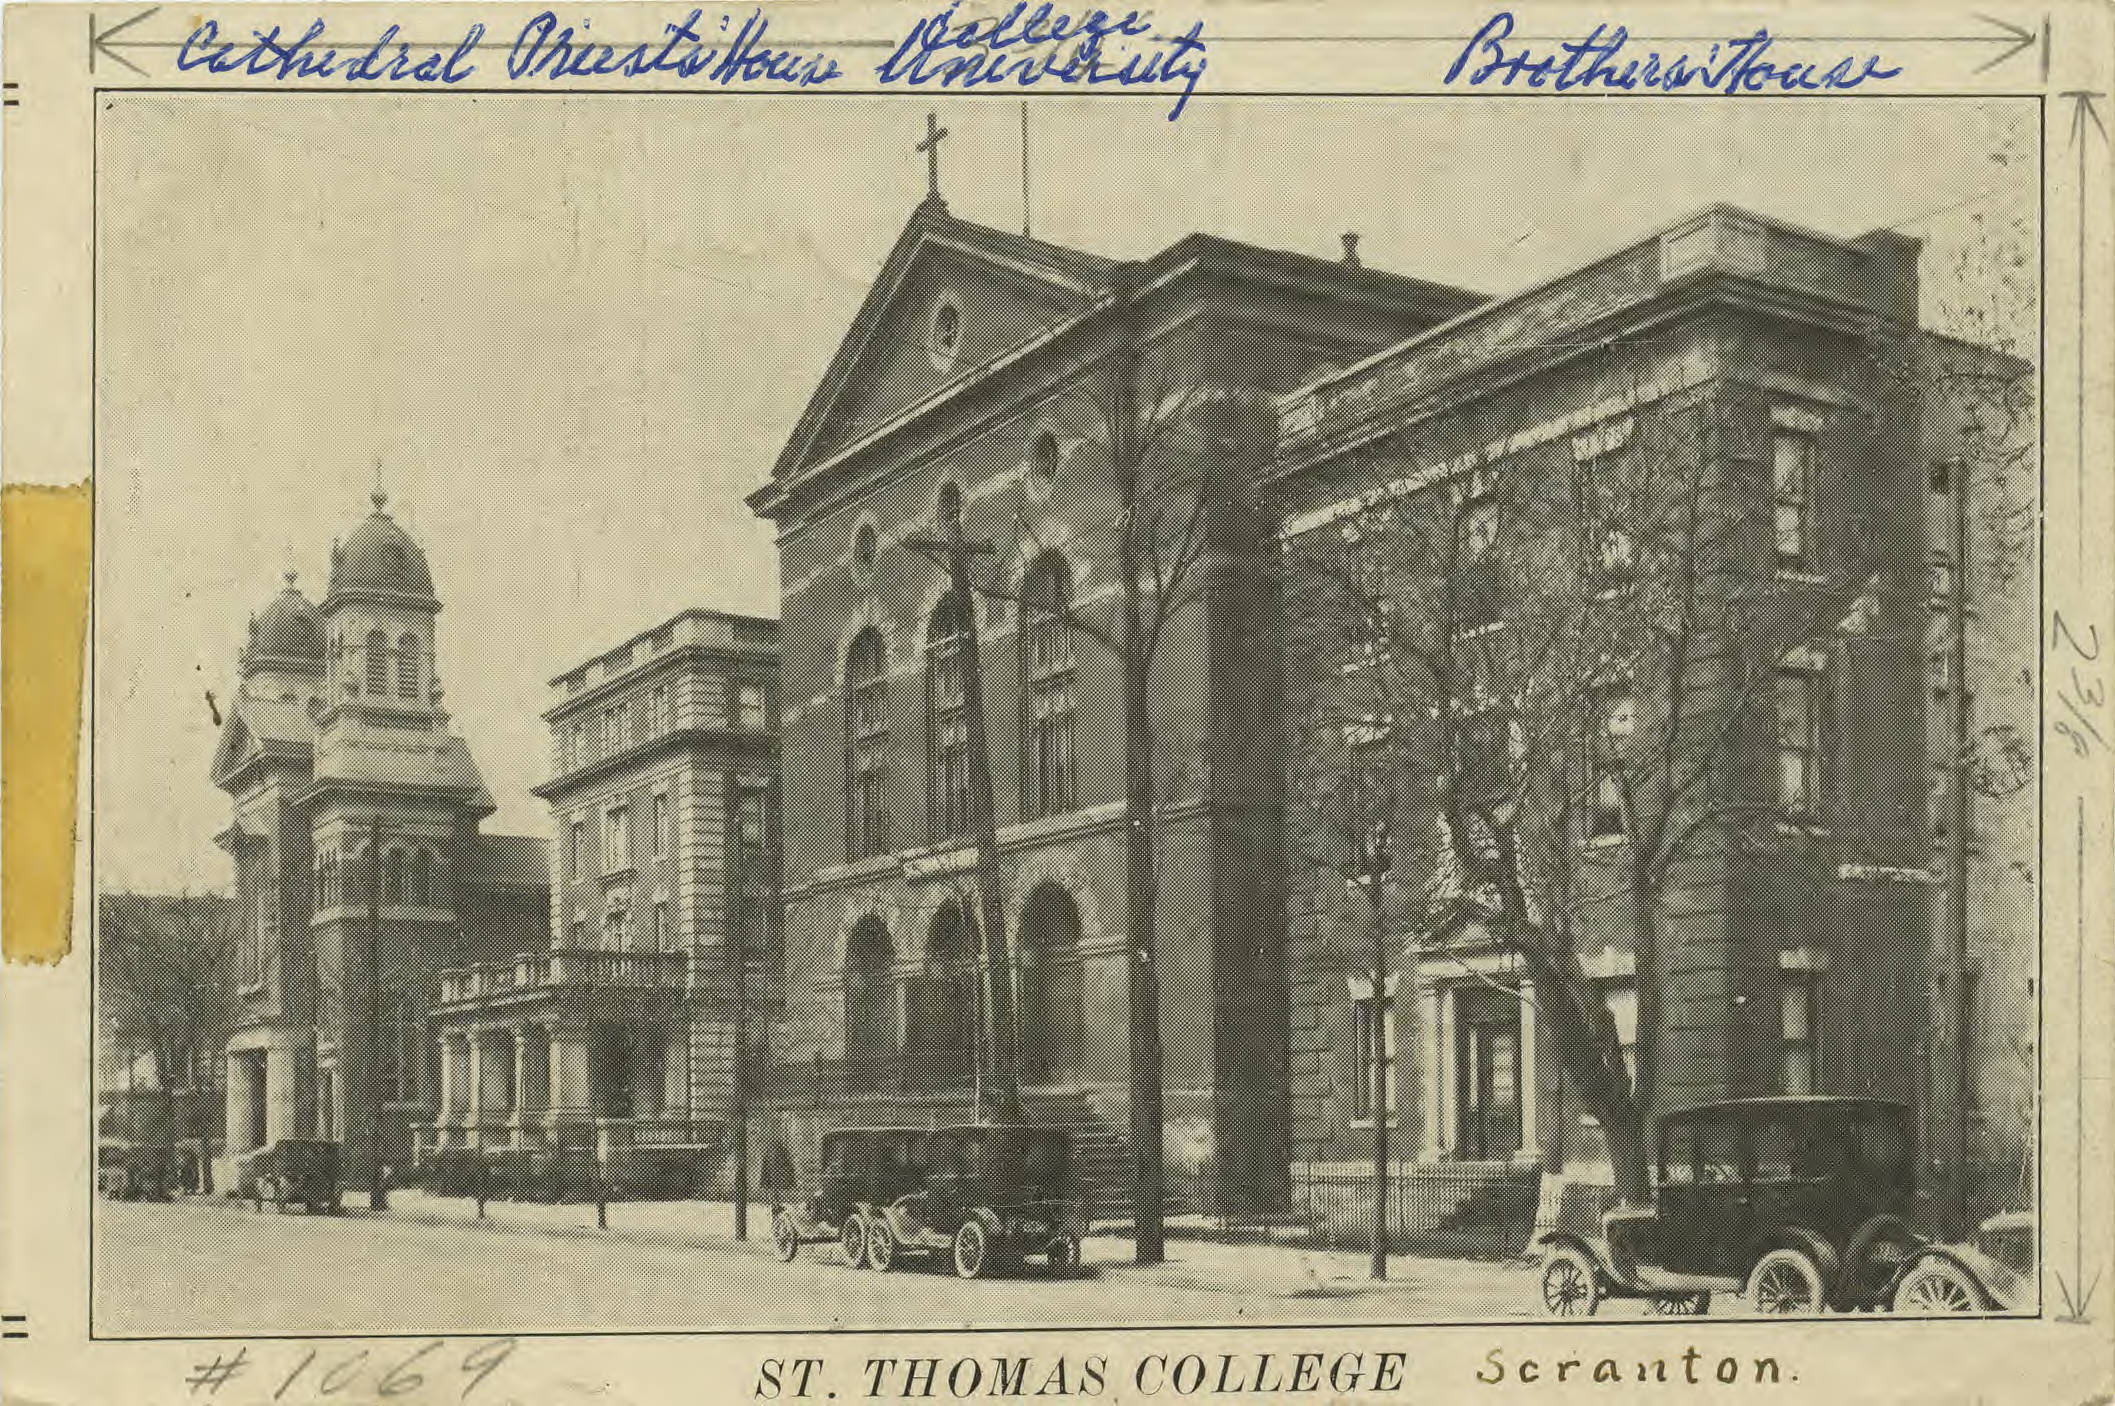 St. Thomas College campus, ca. 1920s